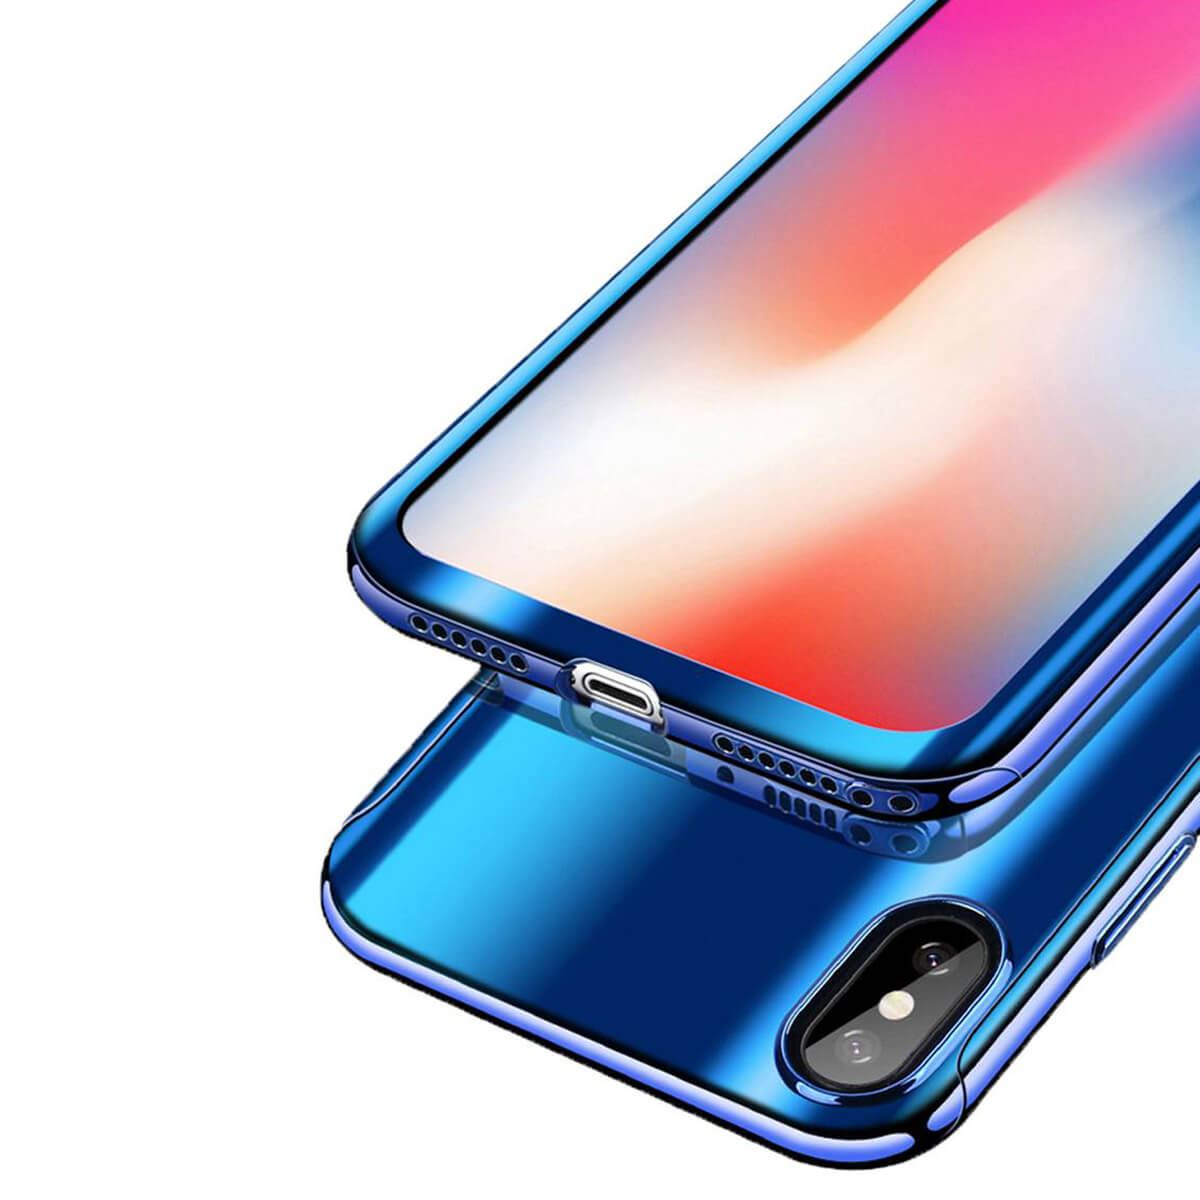 Tempered-Glass-Cover-For-iPhone-X-8-7-Plus-6s-5-Mirror-Hybrid-360-Hard-Thin-Case thumbnail 11